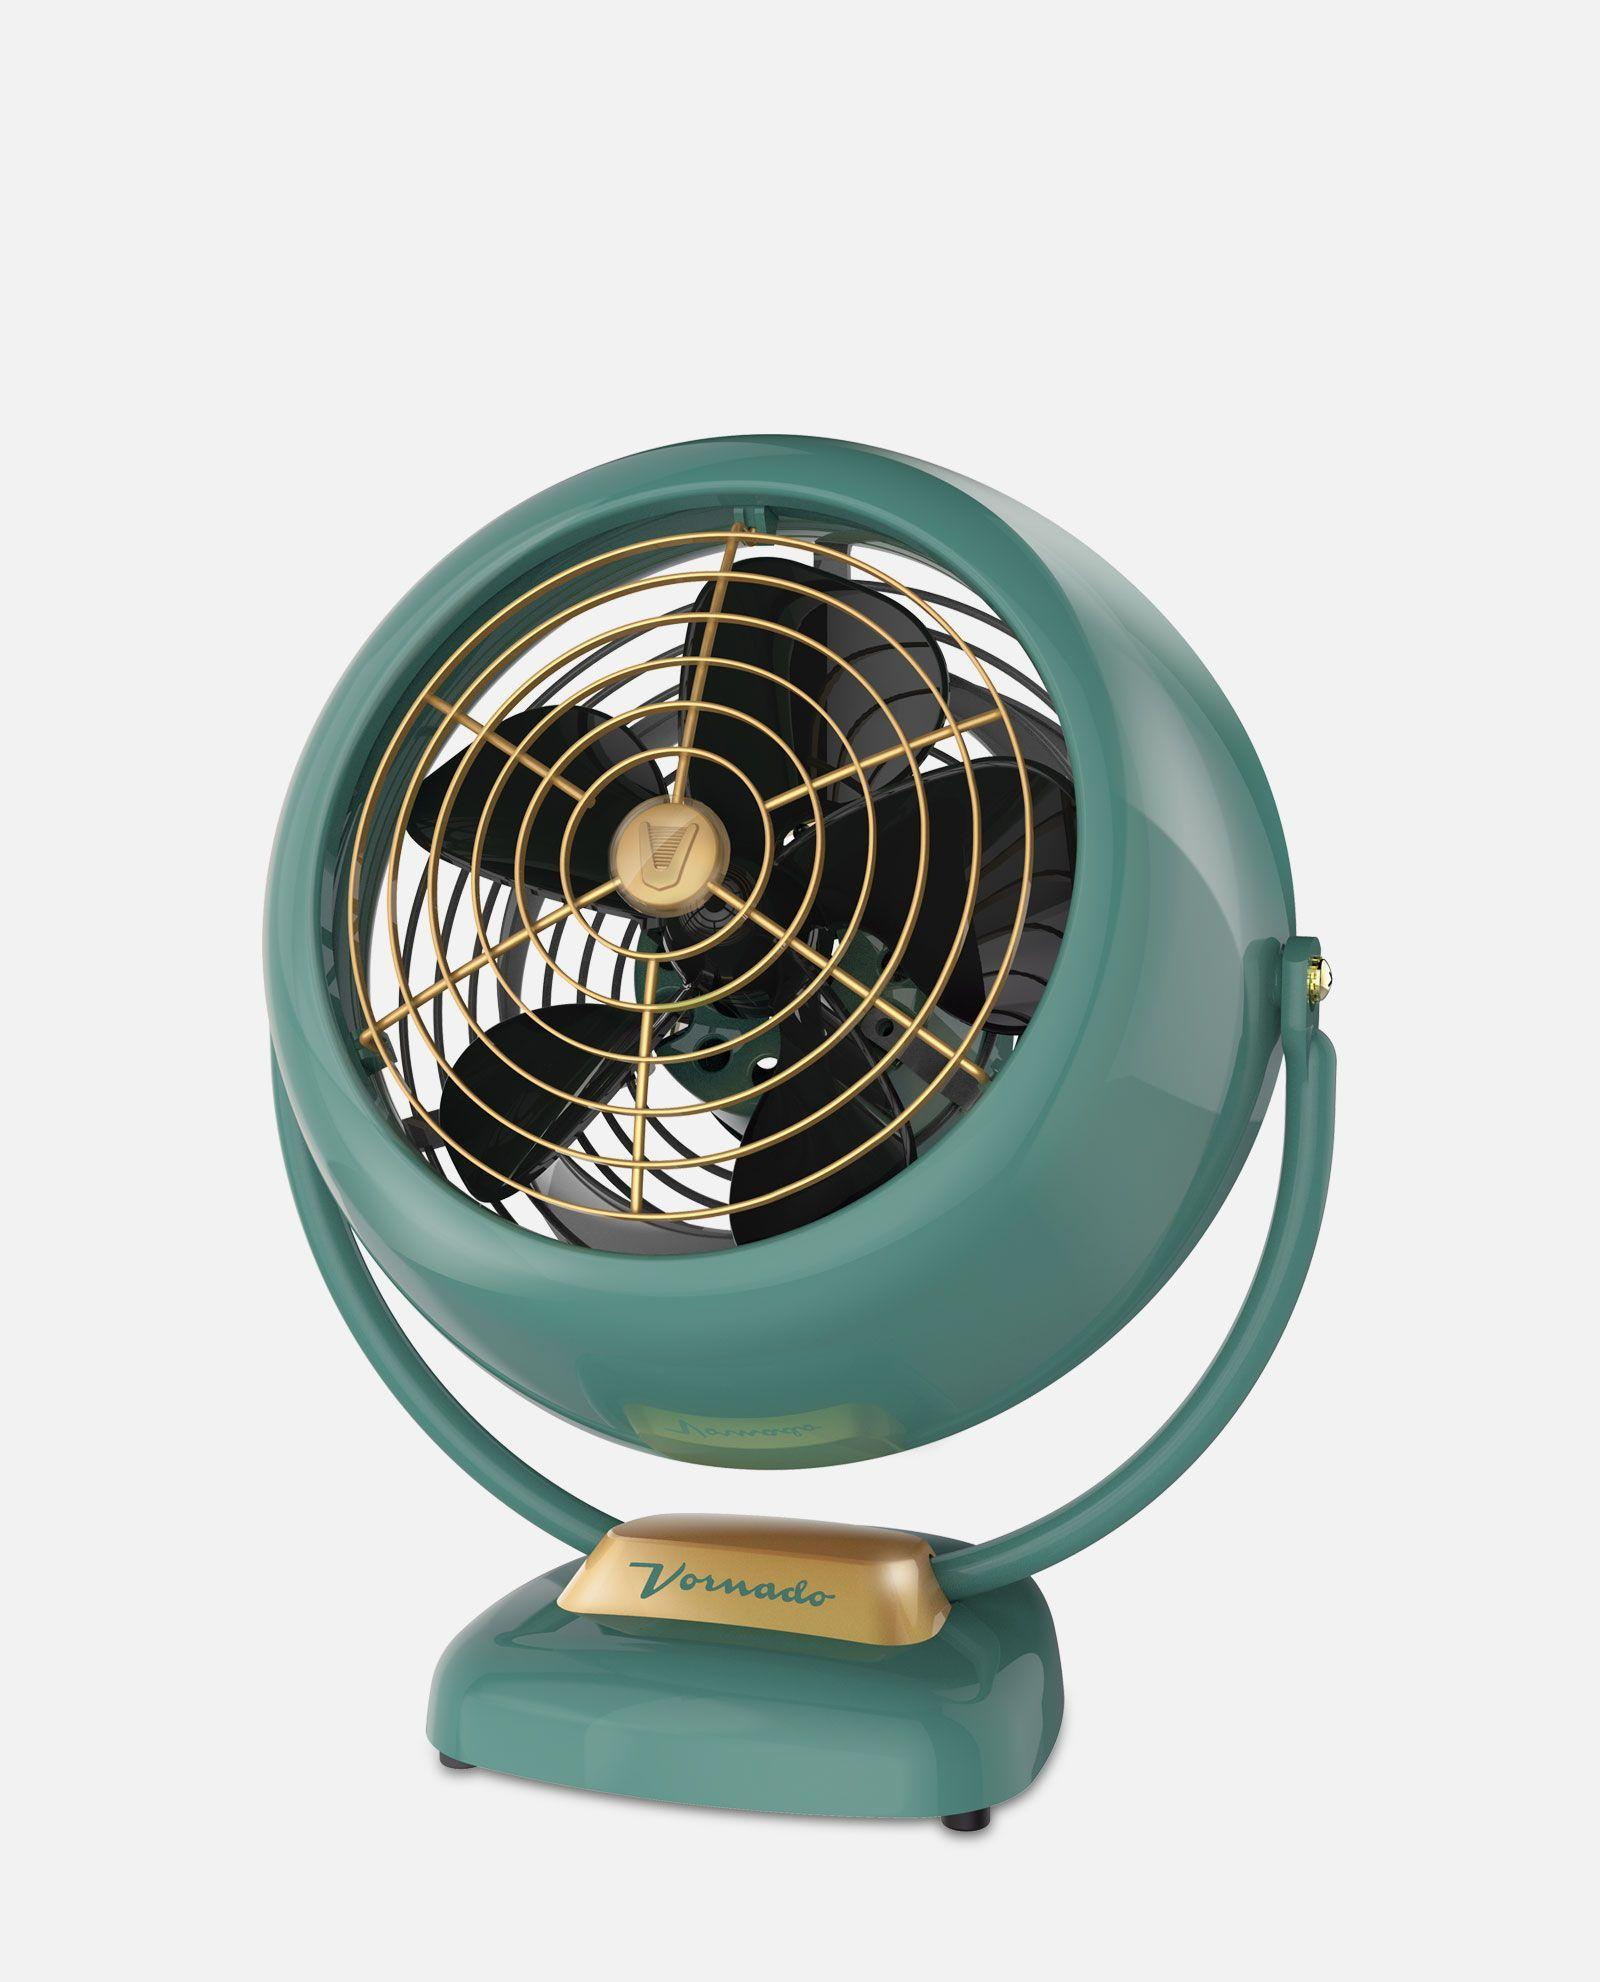 Vfan vintage air circulator vornado for Air circulation fans home